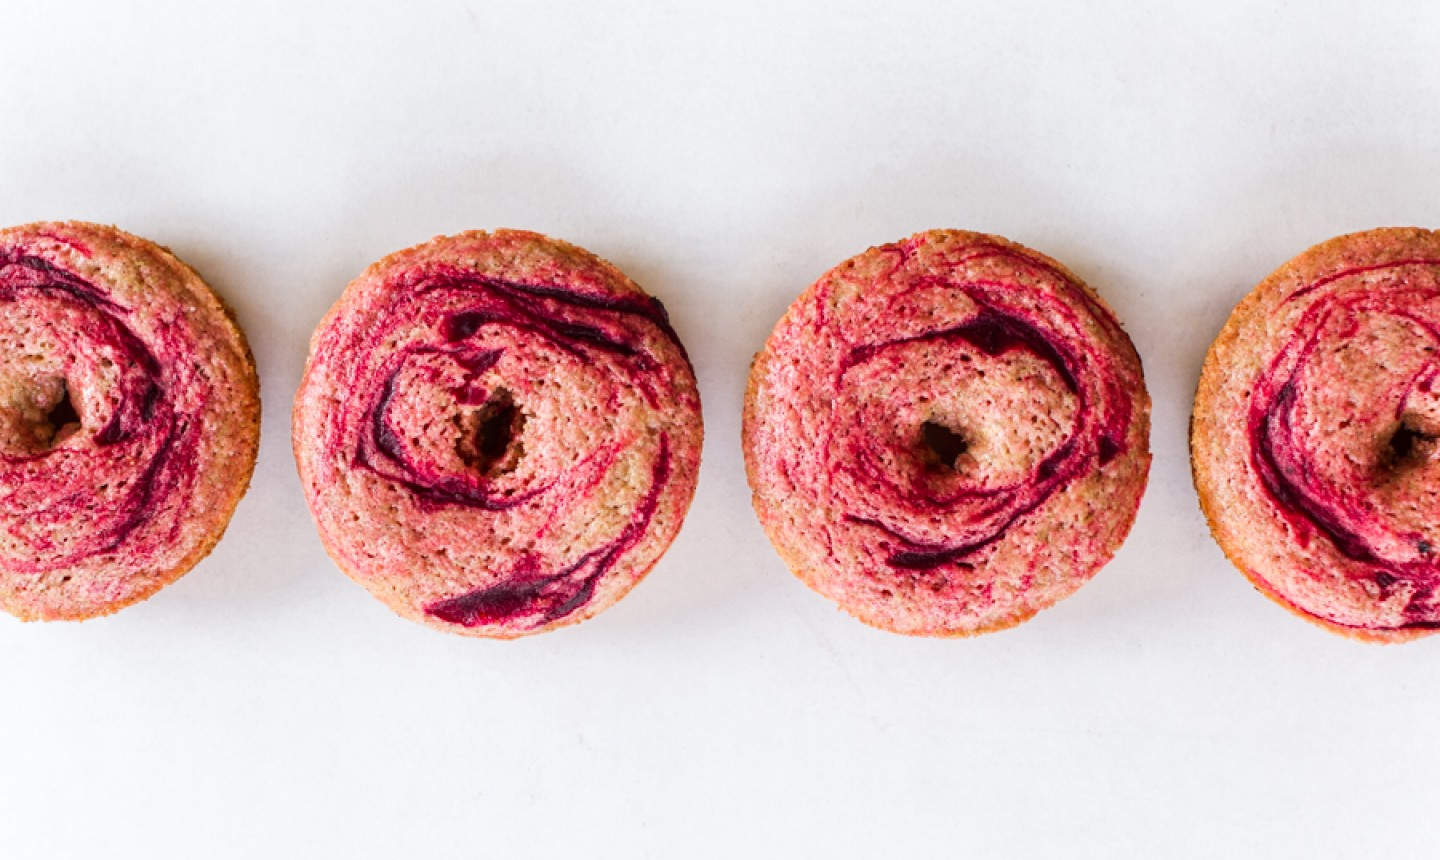 baked beet donuts